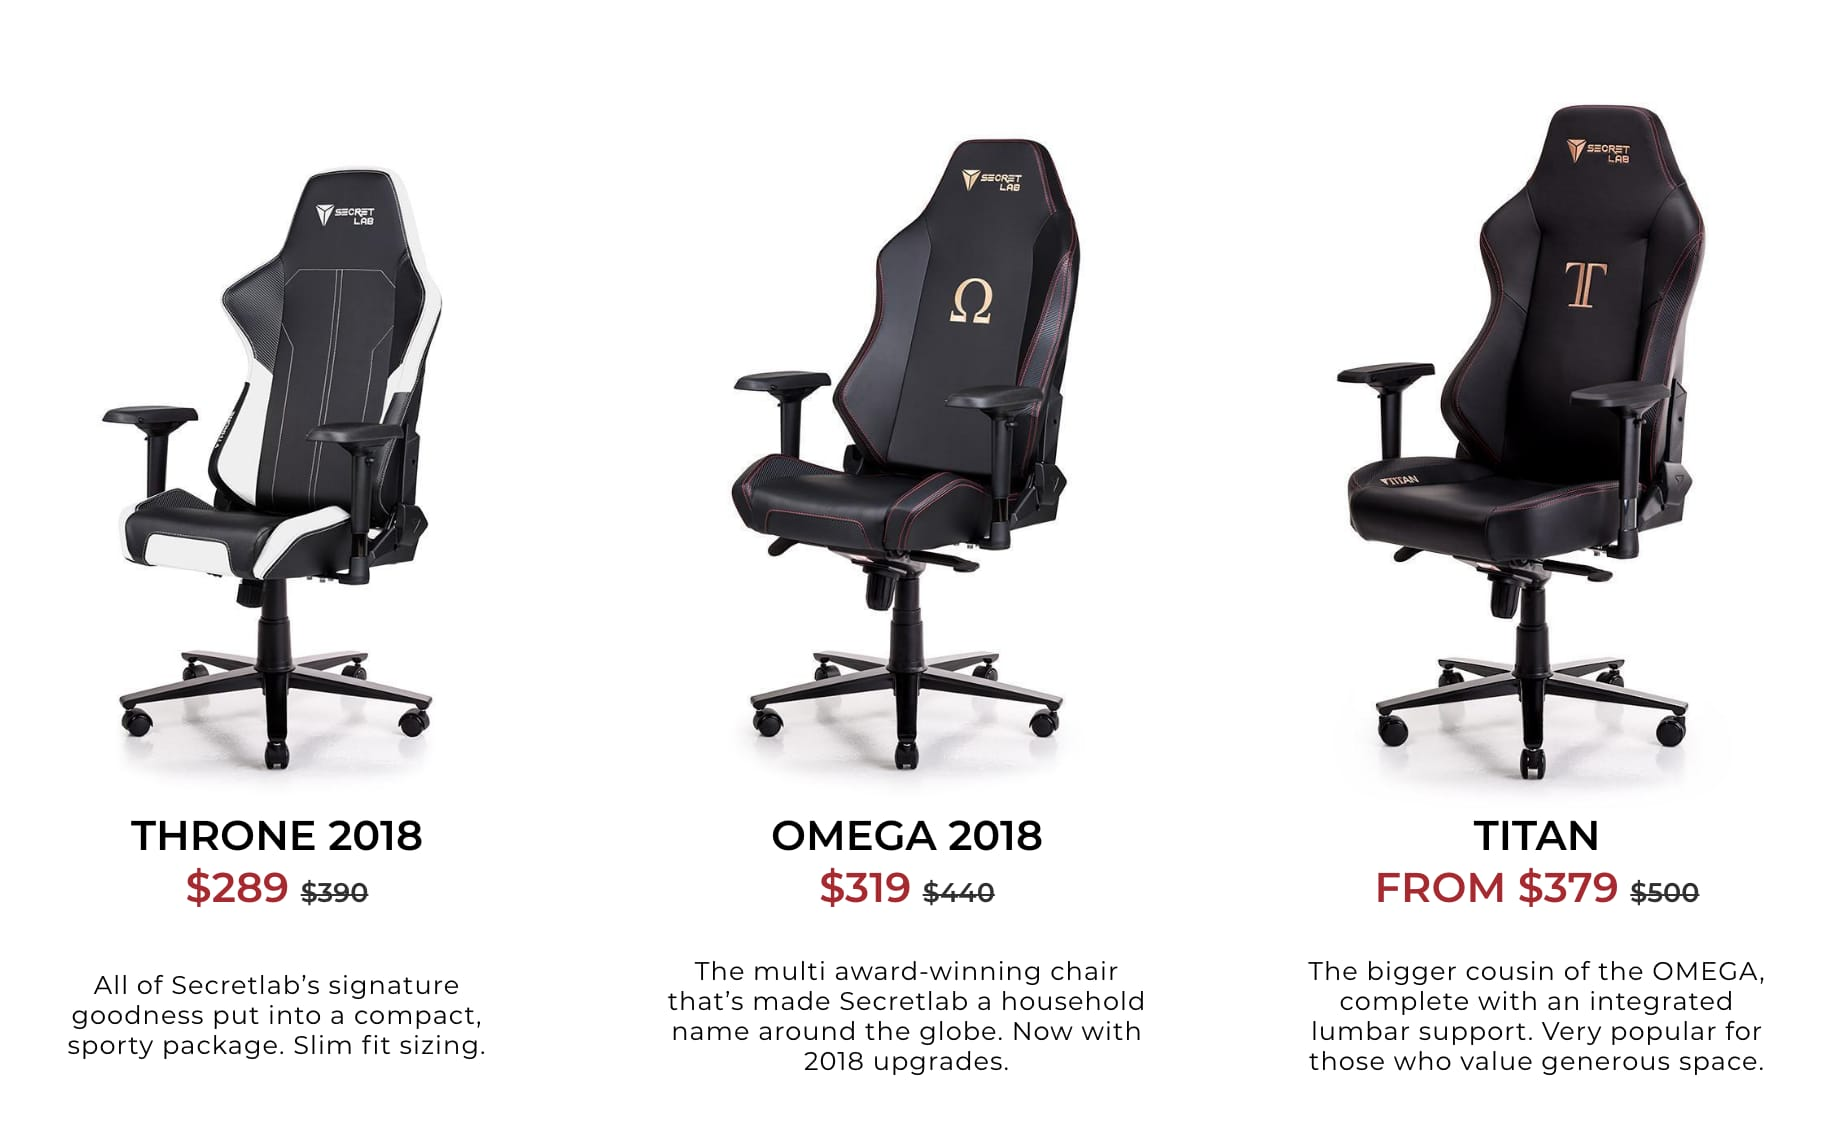 Secretlab Throne $289, Omega $319,  Titan